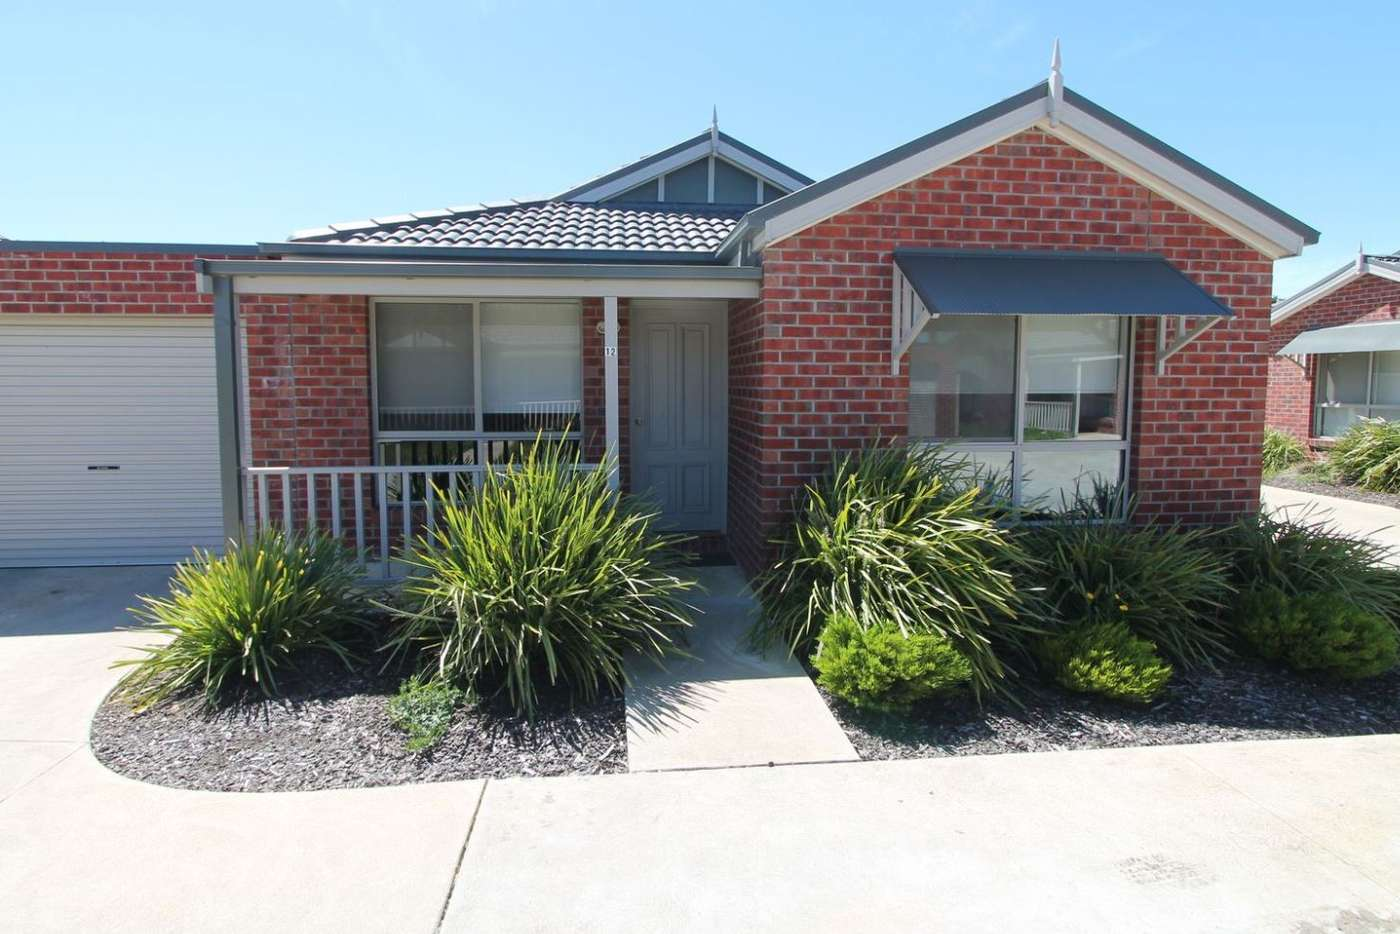 Main view of Homely townhouse listing, 12 Tristan Drive, Sebastopol VIC 3356